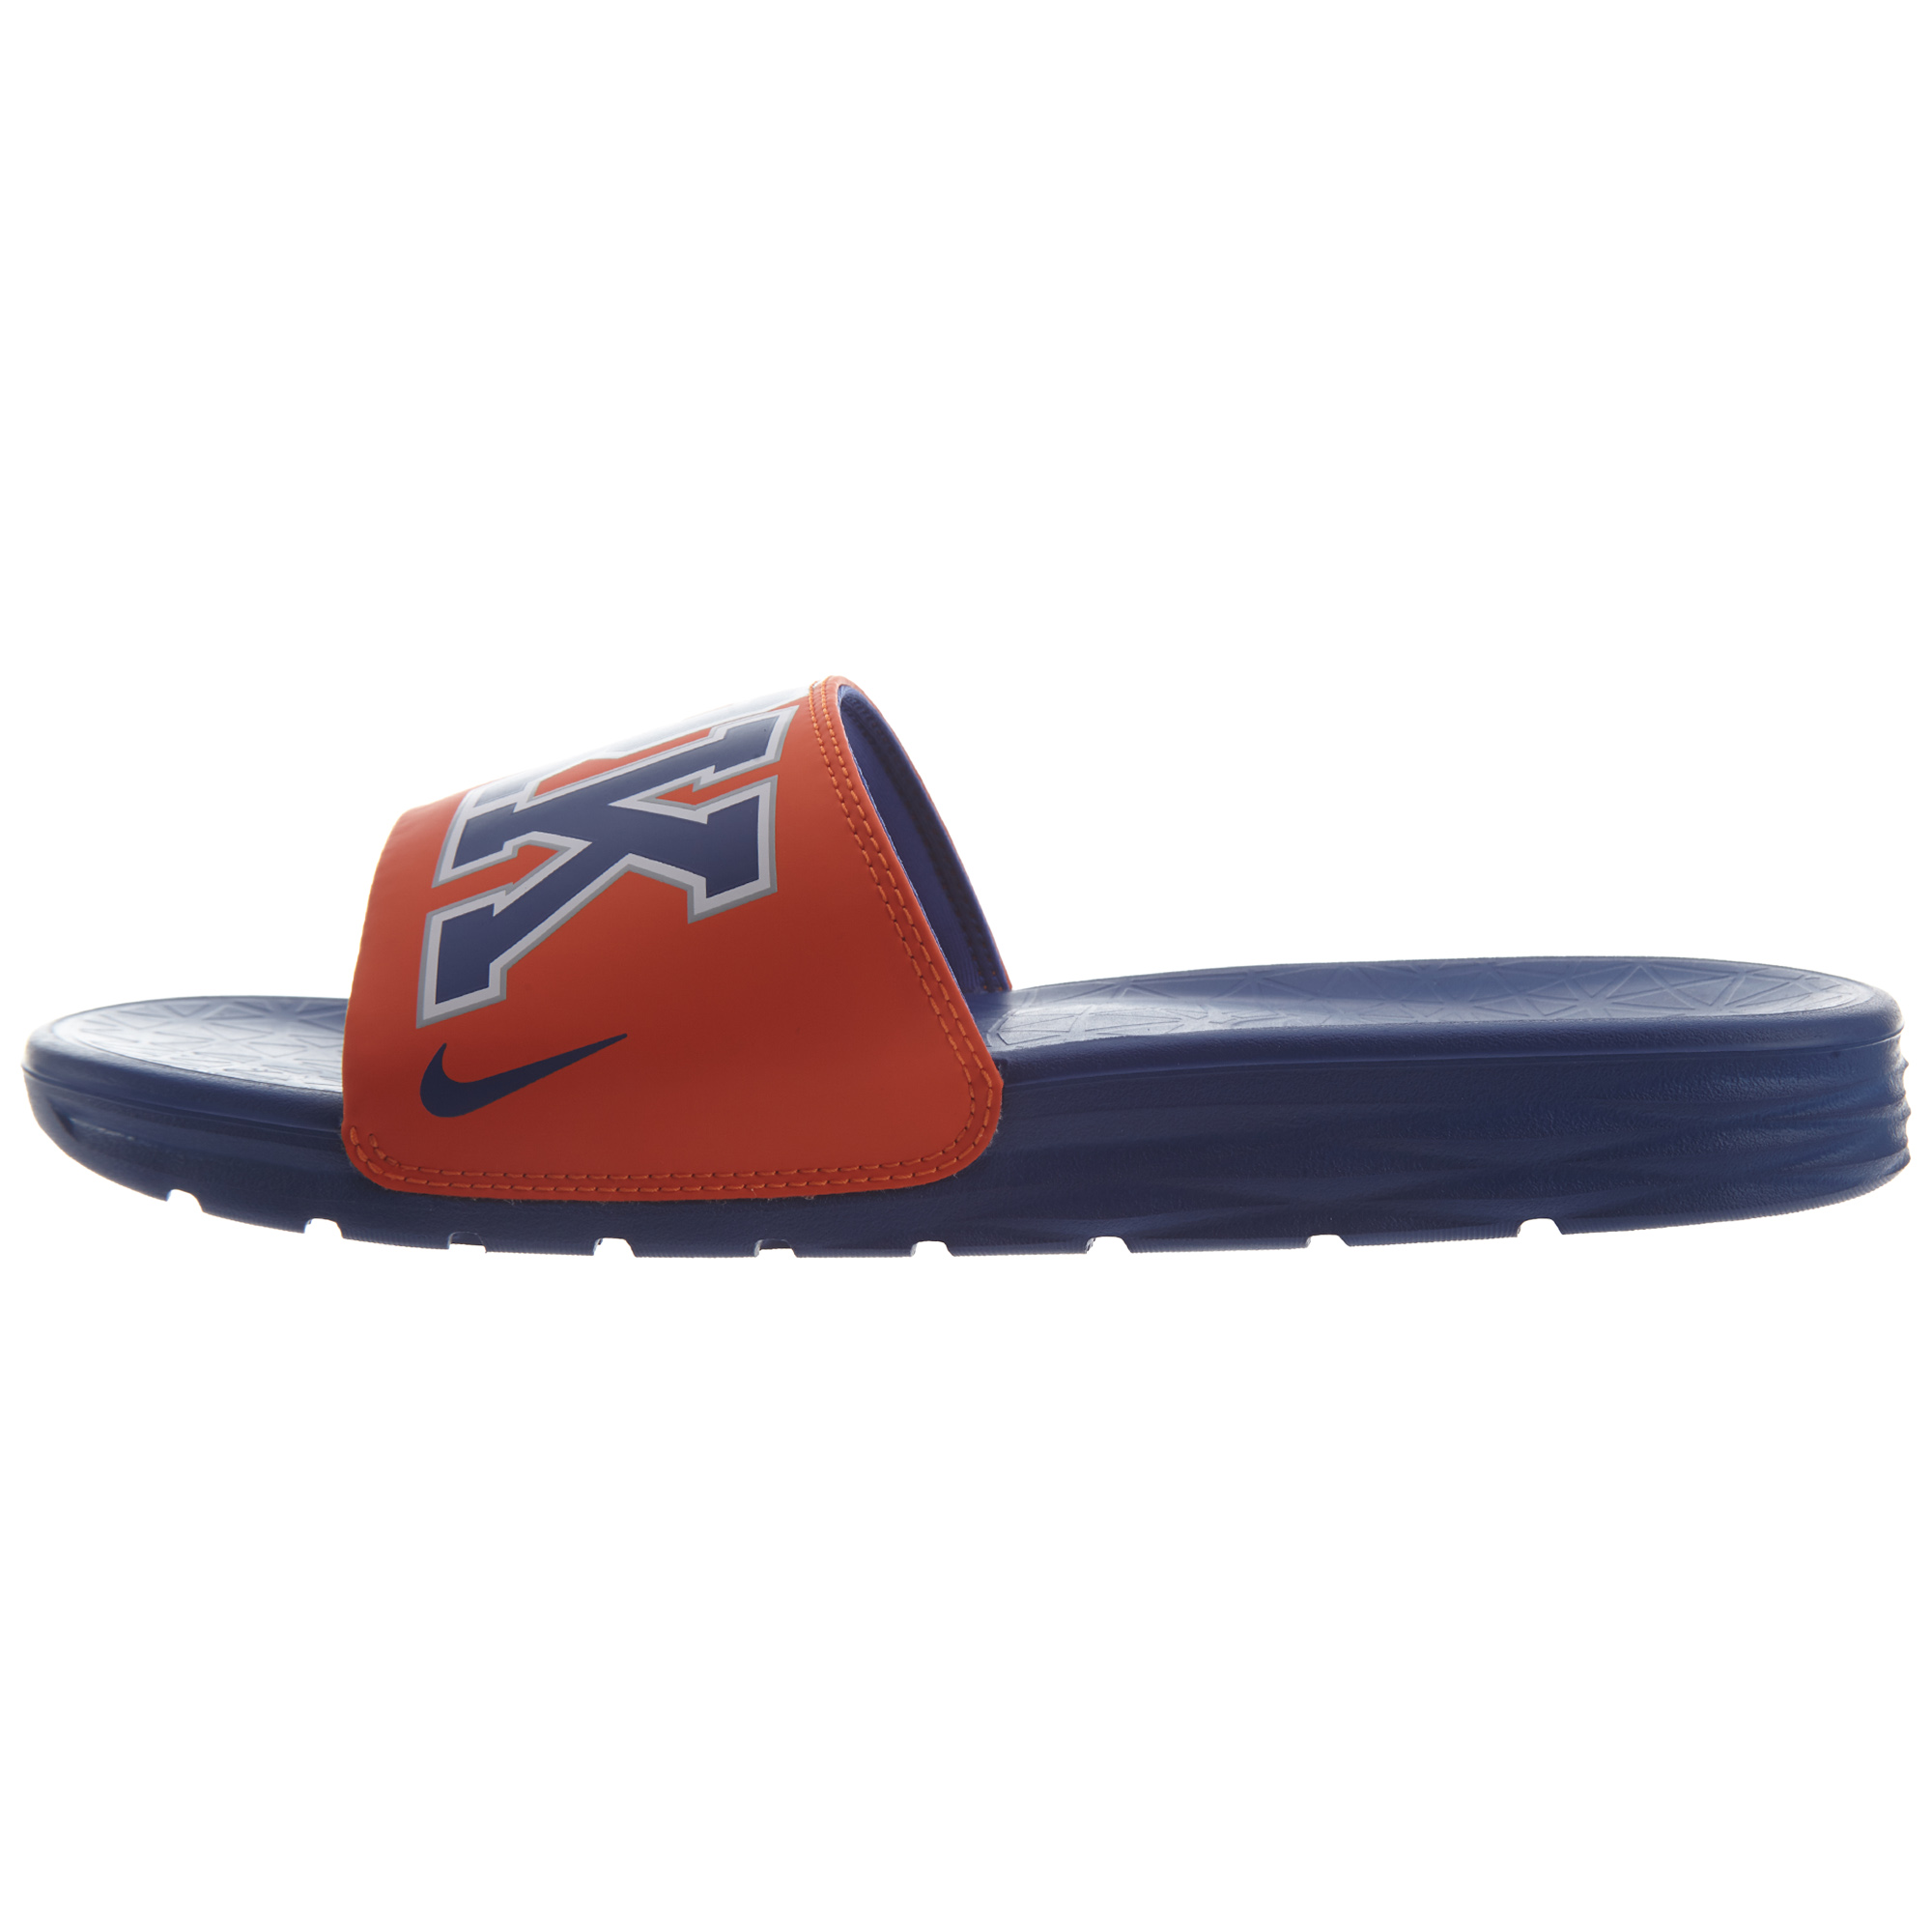 on sale 413c6 44805 Details about Nike Mens Benassi Solarsoft NBA Slide Sandals 917551-800